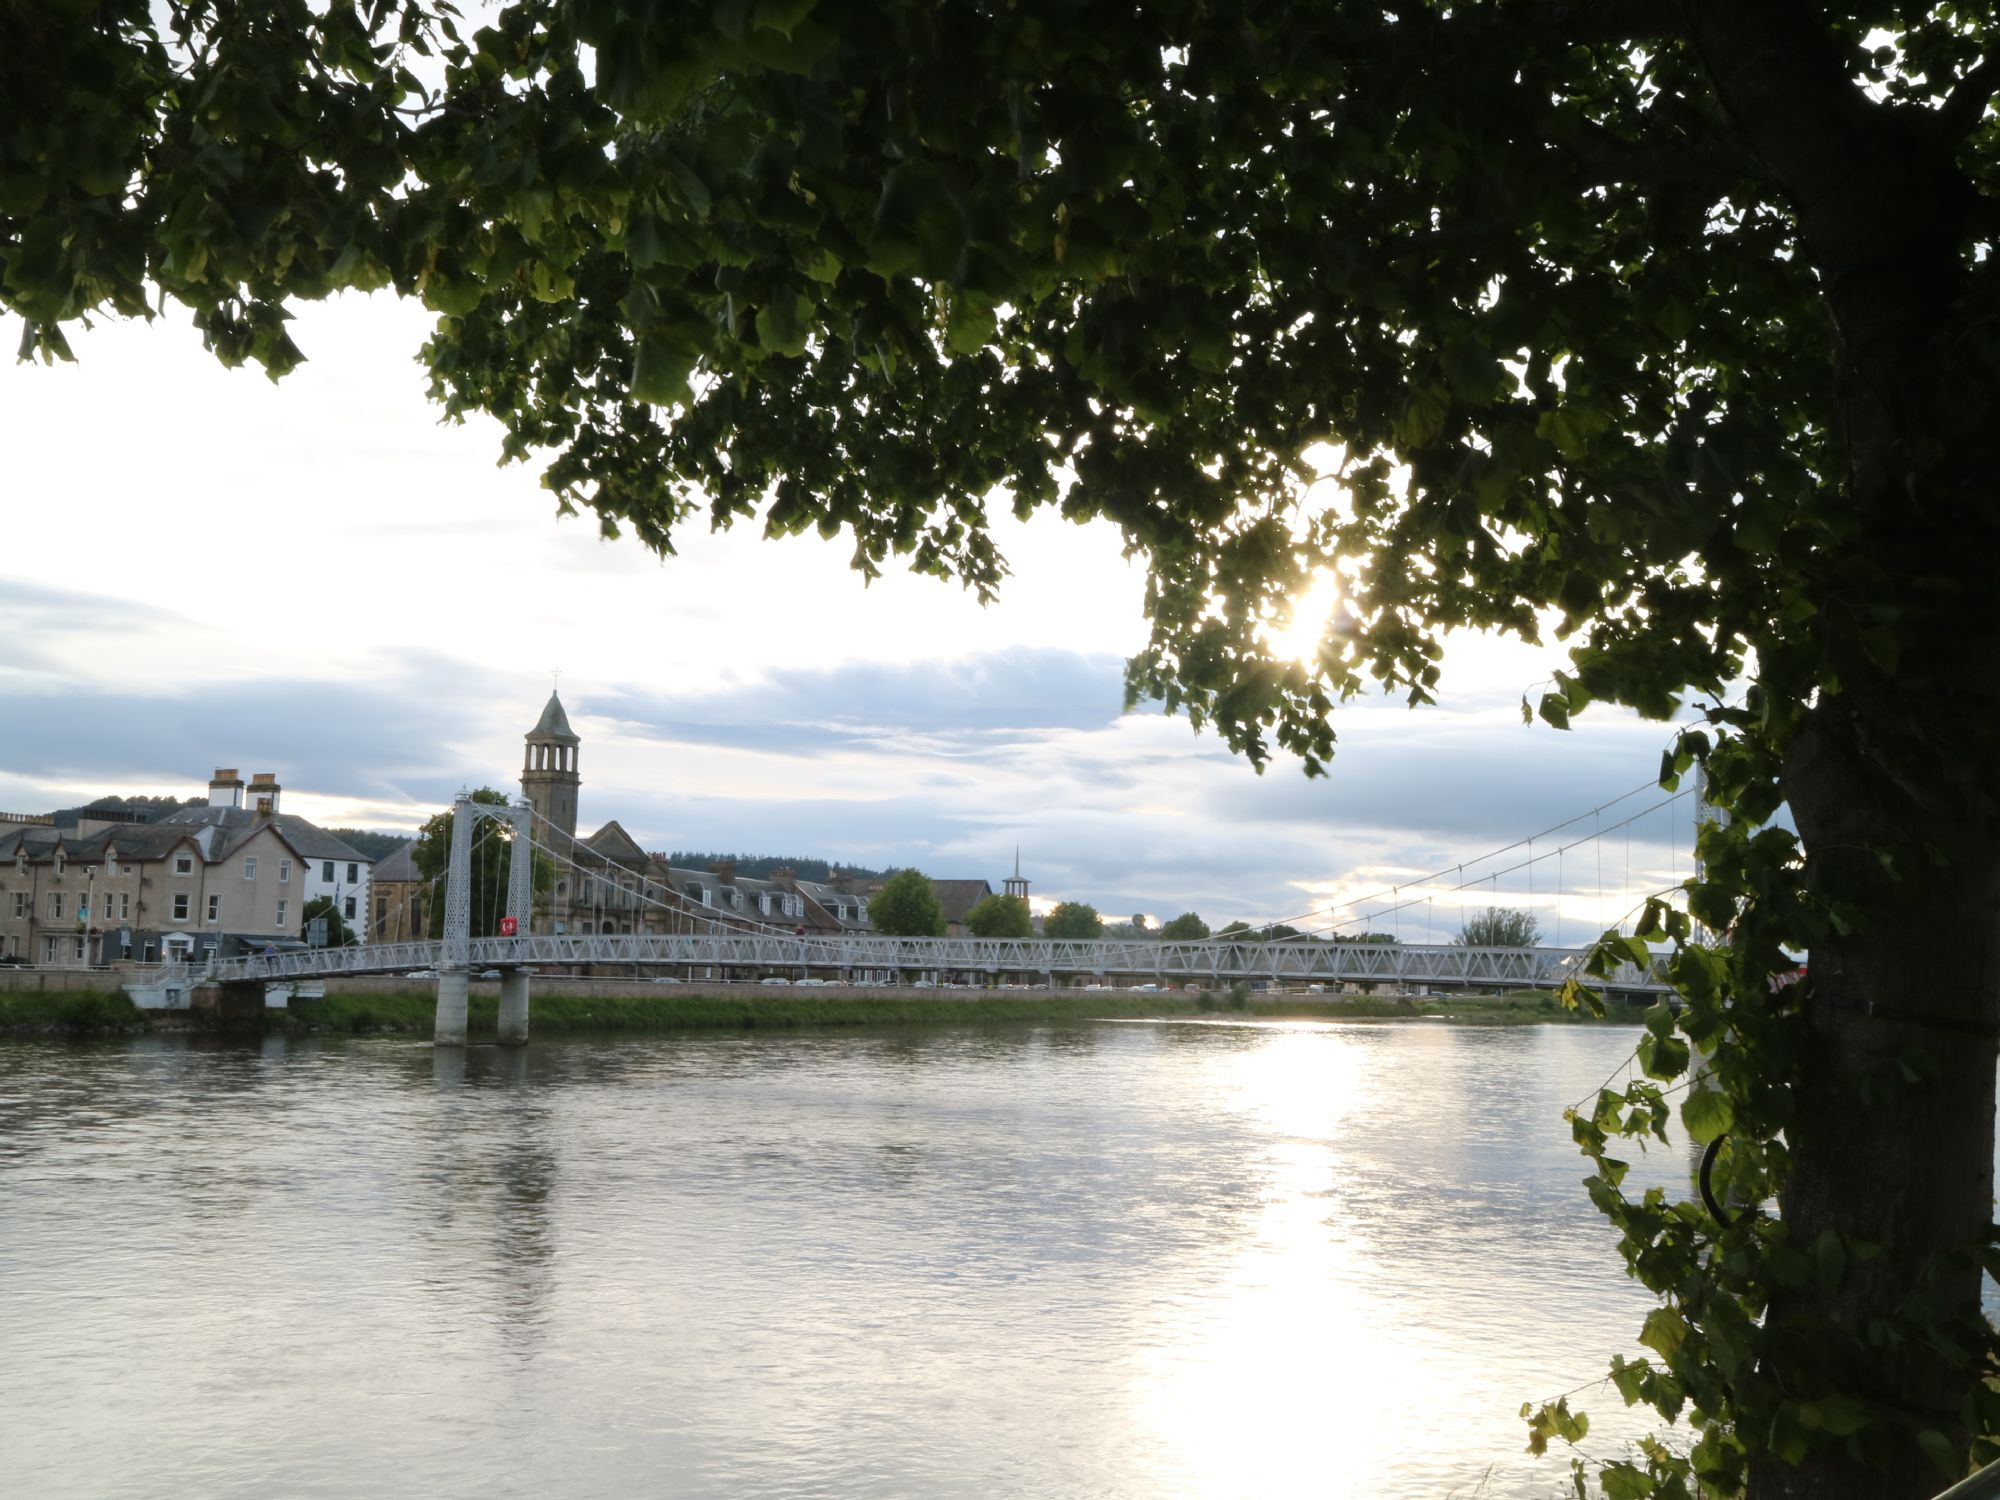 Inverness under a tree